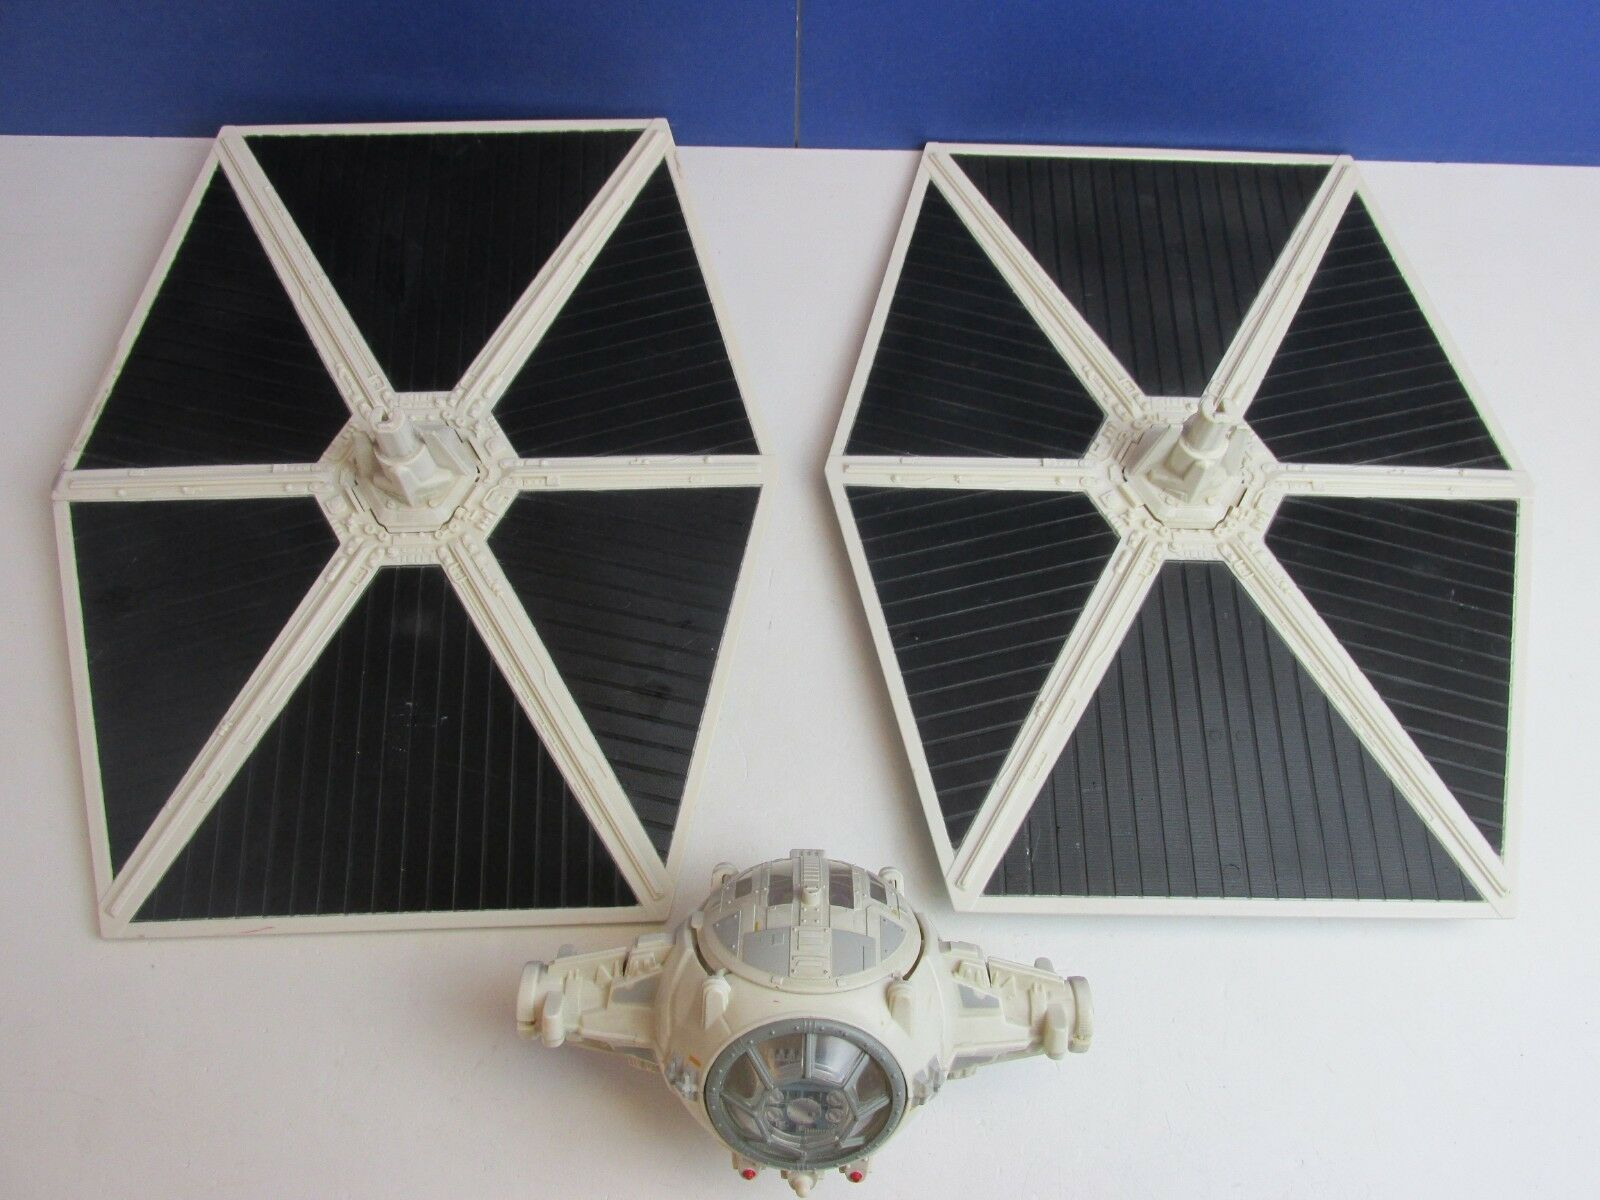 Large LEGACY COLLECTION star wars WHITE IMPERIAL IMPERIAL IMPERIAL TIE FIGHTER 2003 HASBRO 34C 19b4e1